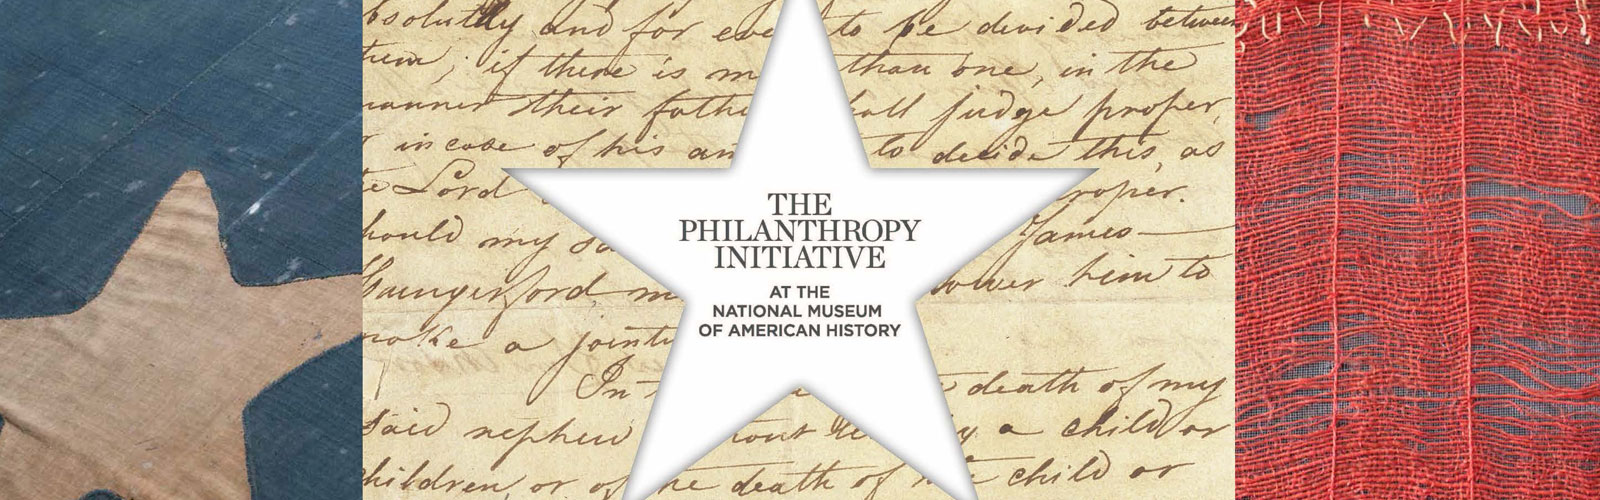 The Philanthropy Initiative at the National Museum of American History